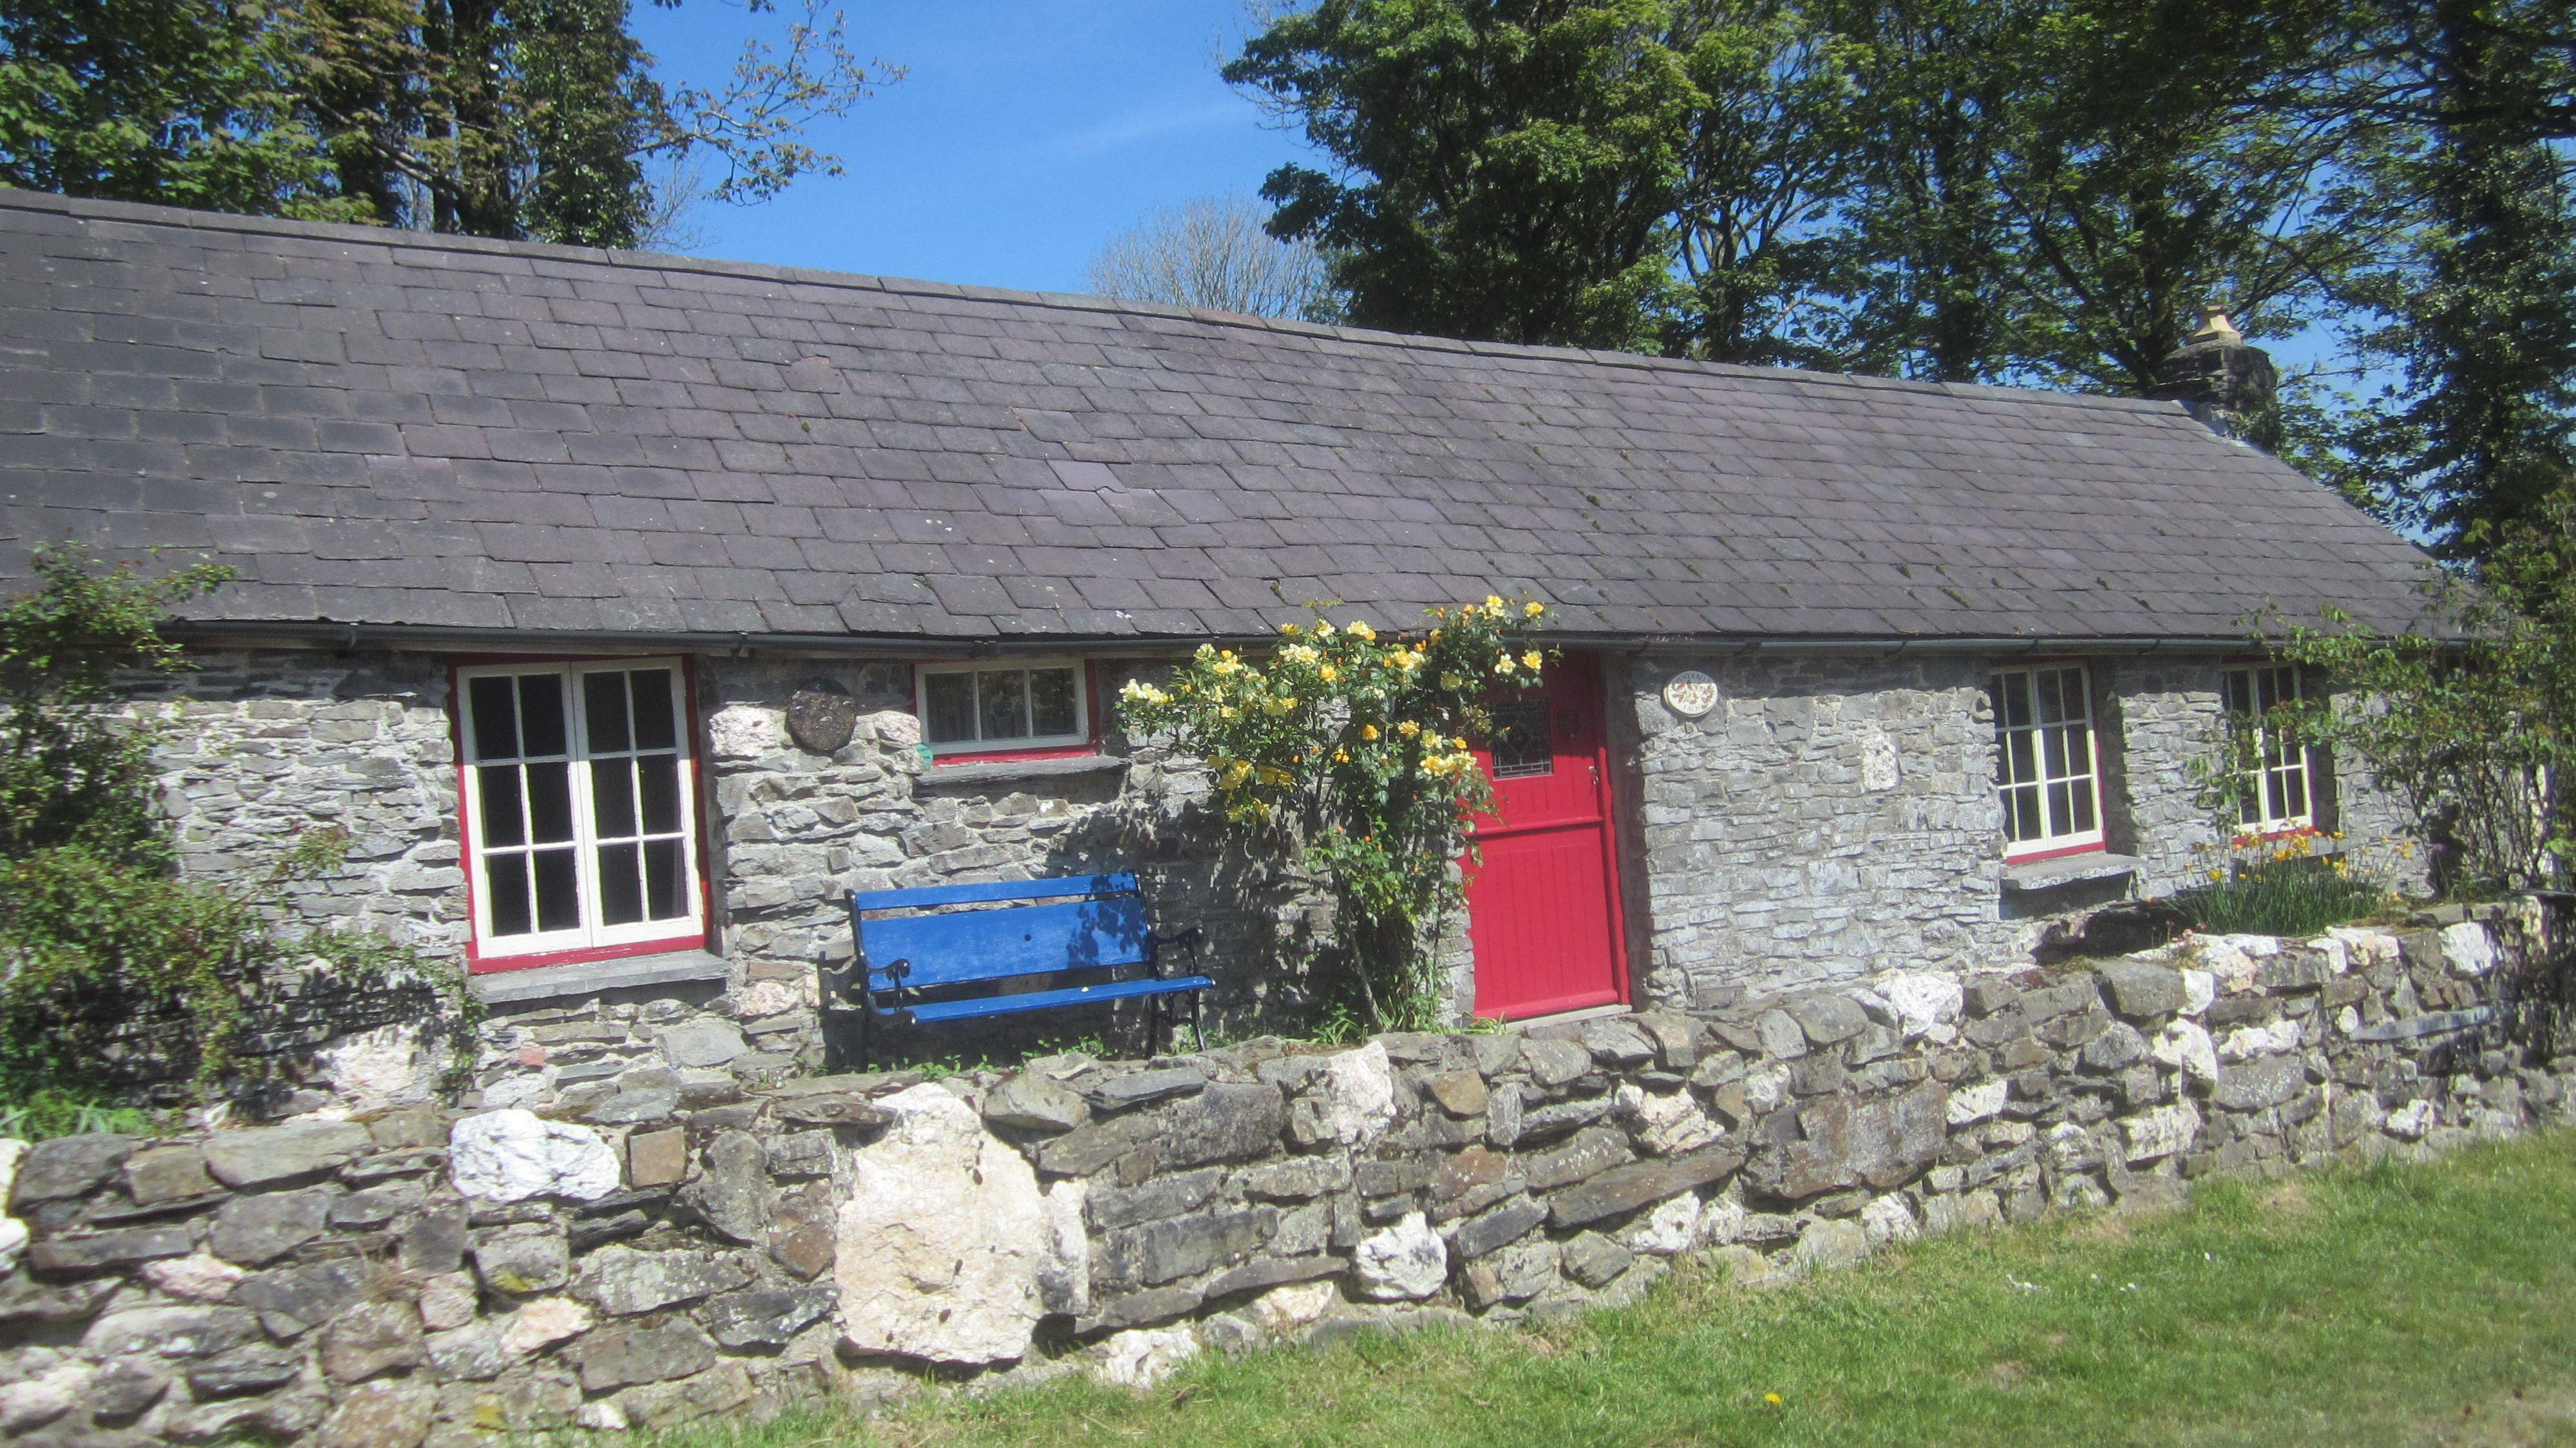 Penyrallt Fach Cottage A Sweet Holiday Cottage On An Organic Dairy Farm In Carmarthensh Holiday Cottage Holiday Cottages To Rent Holiday Cottages Uk